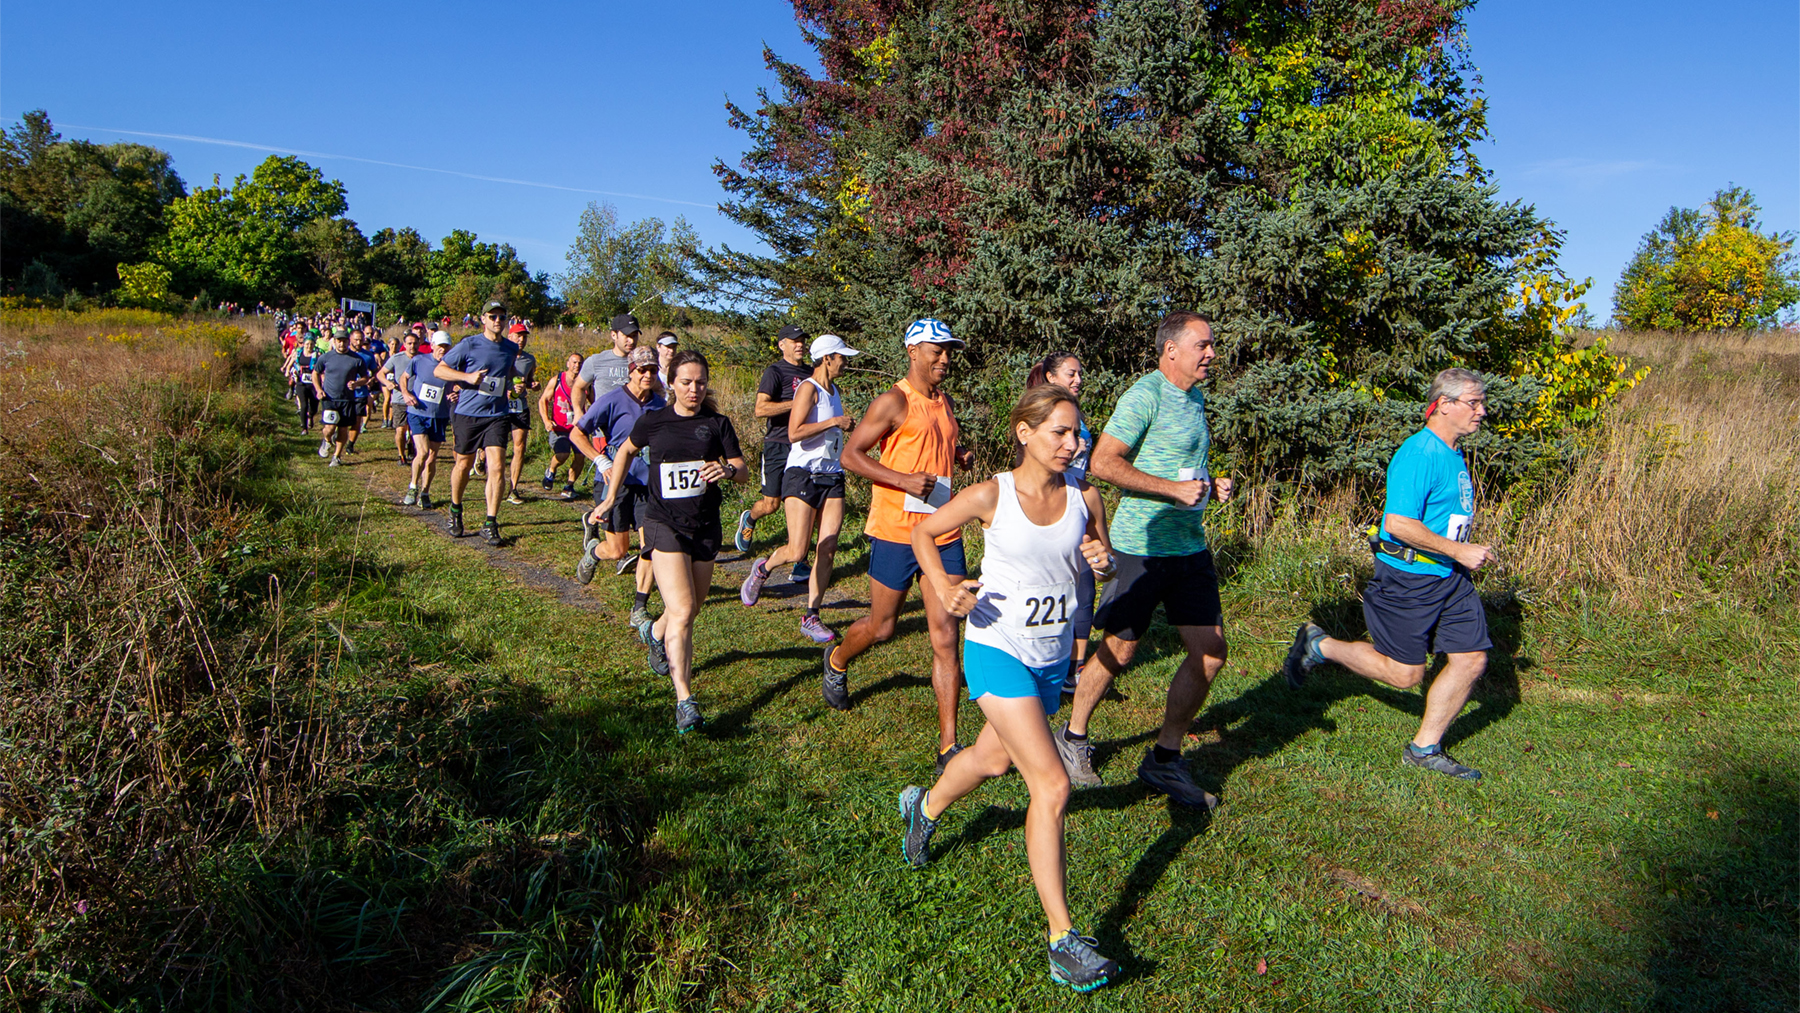 A group of runners on a mowed path